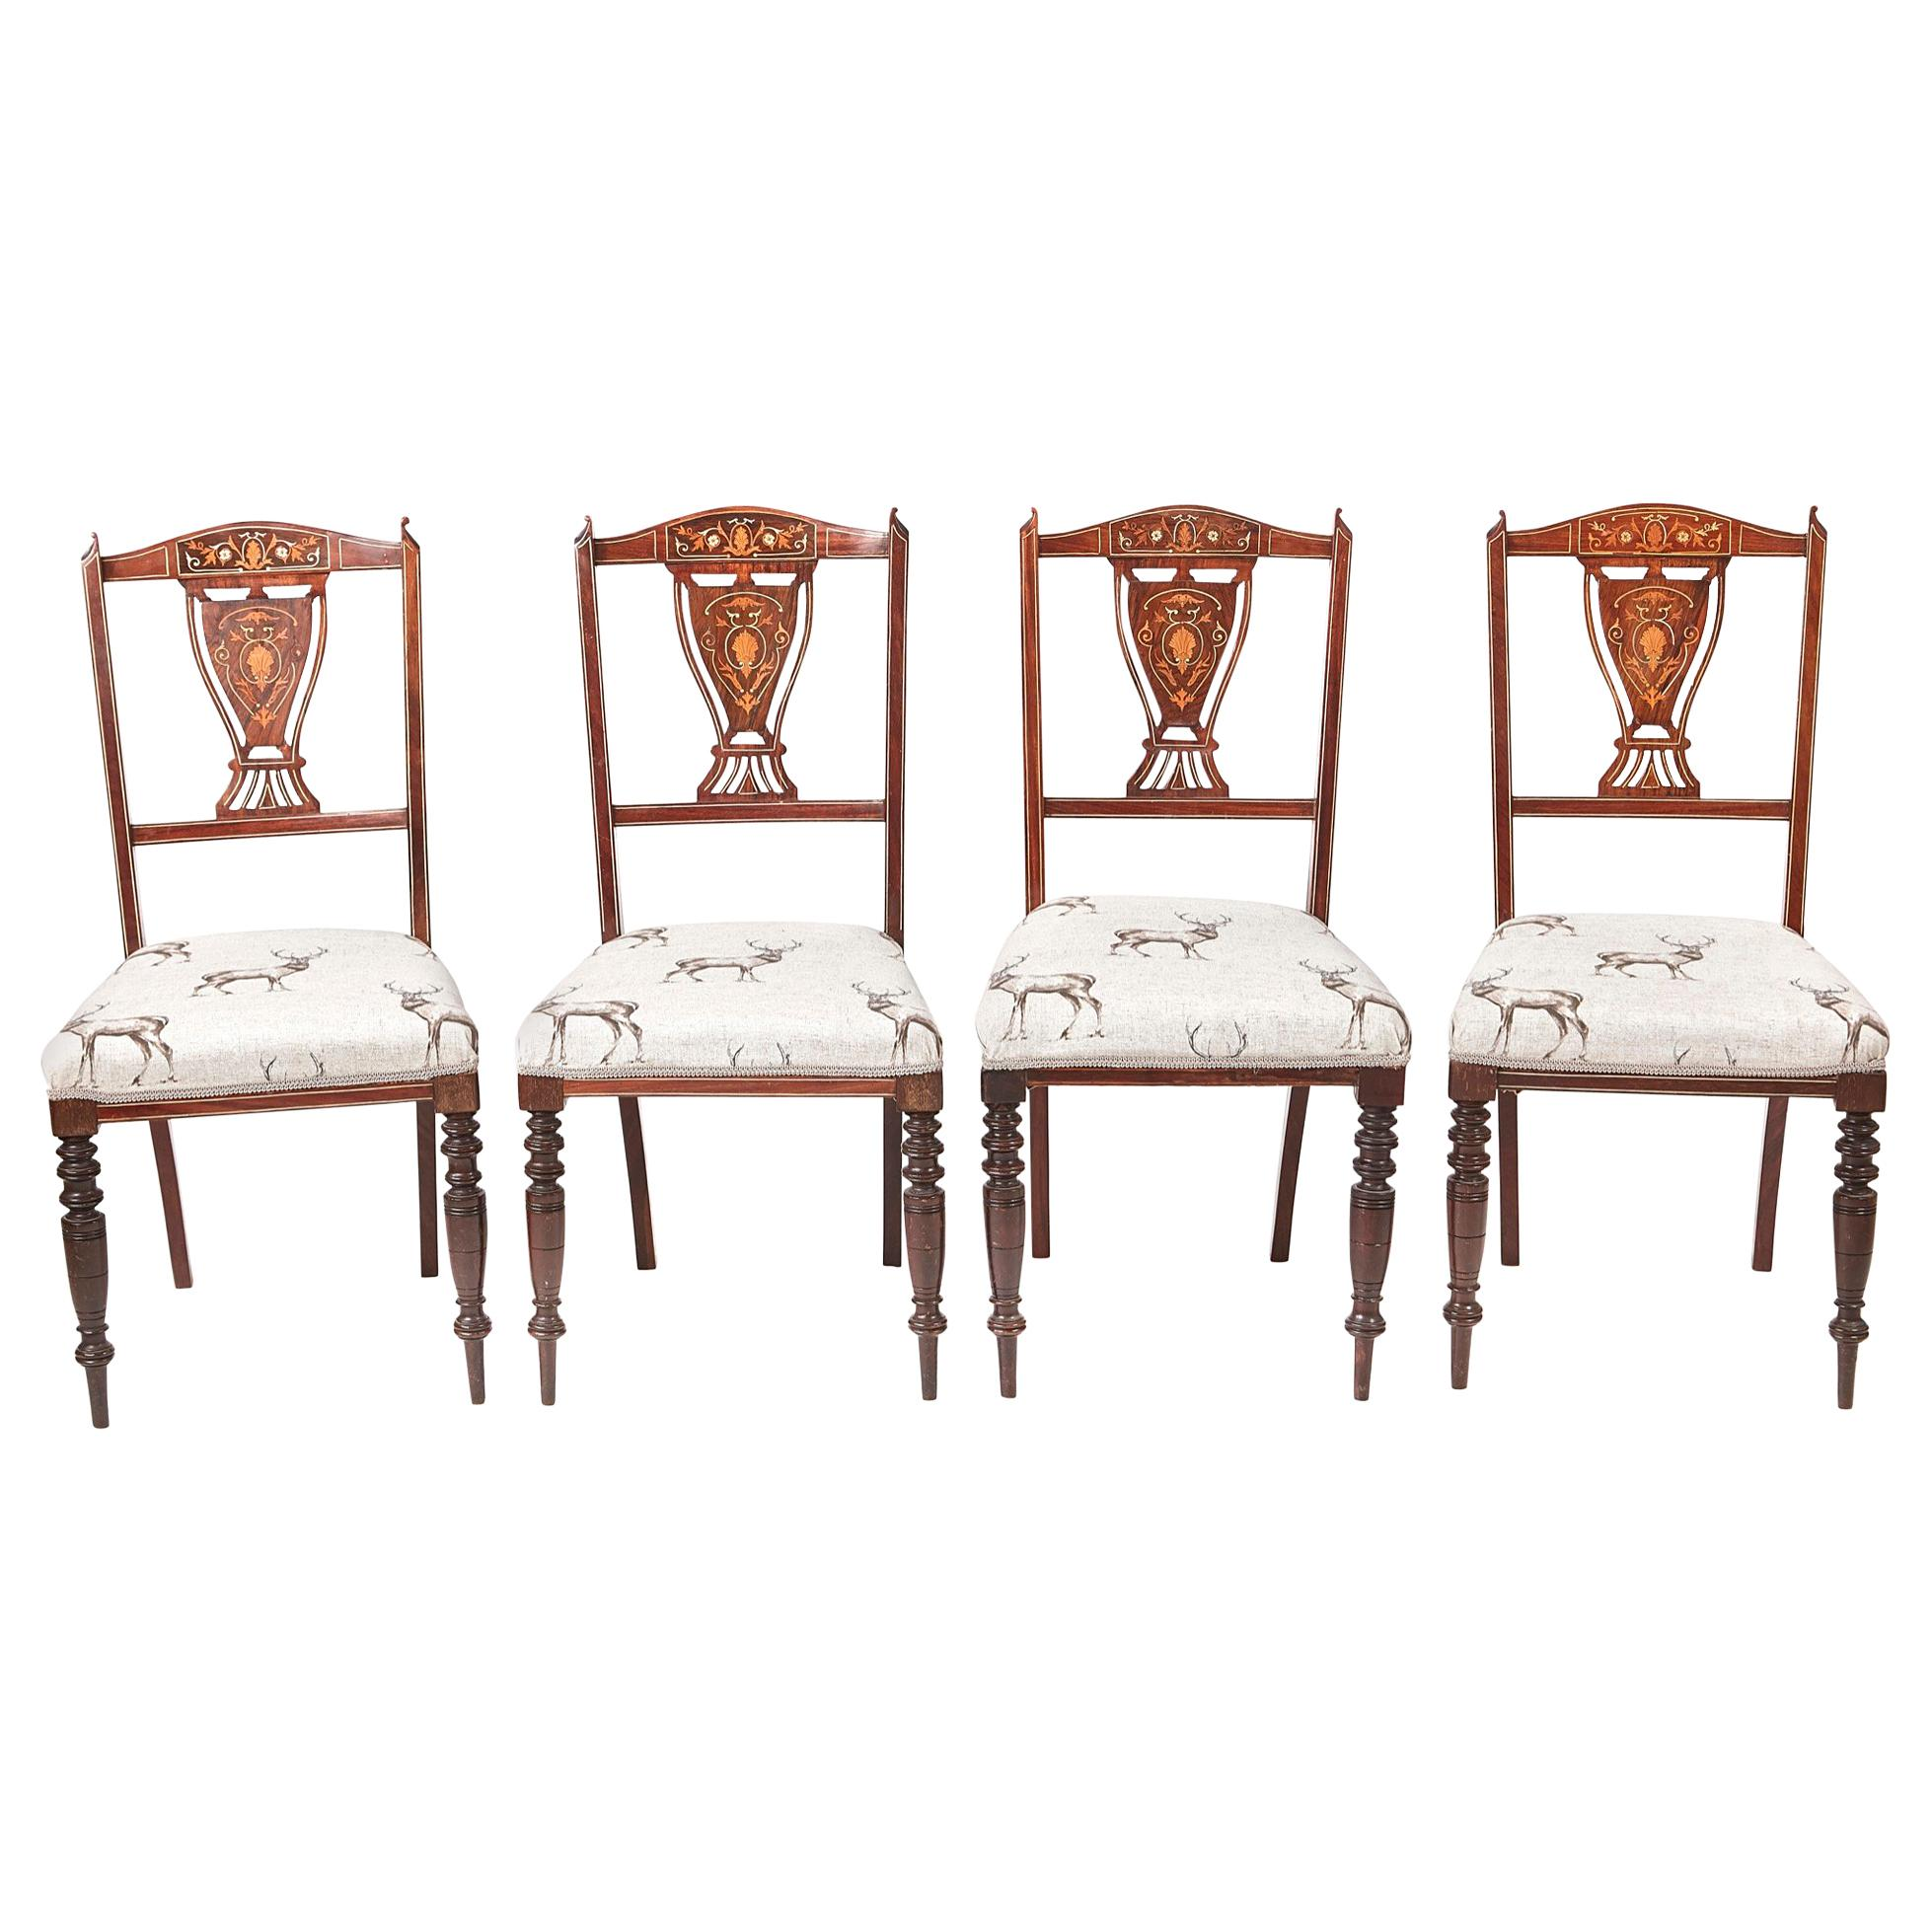 Chairs Antique Furniture 4 Edwardian Chairs